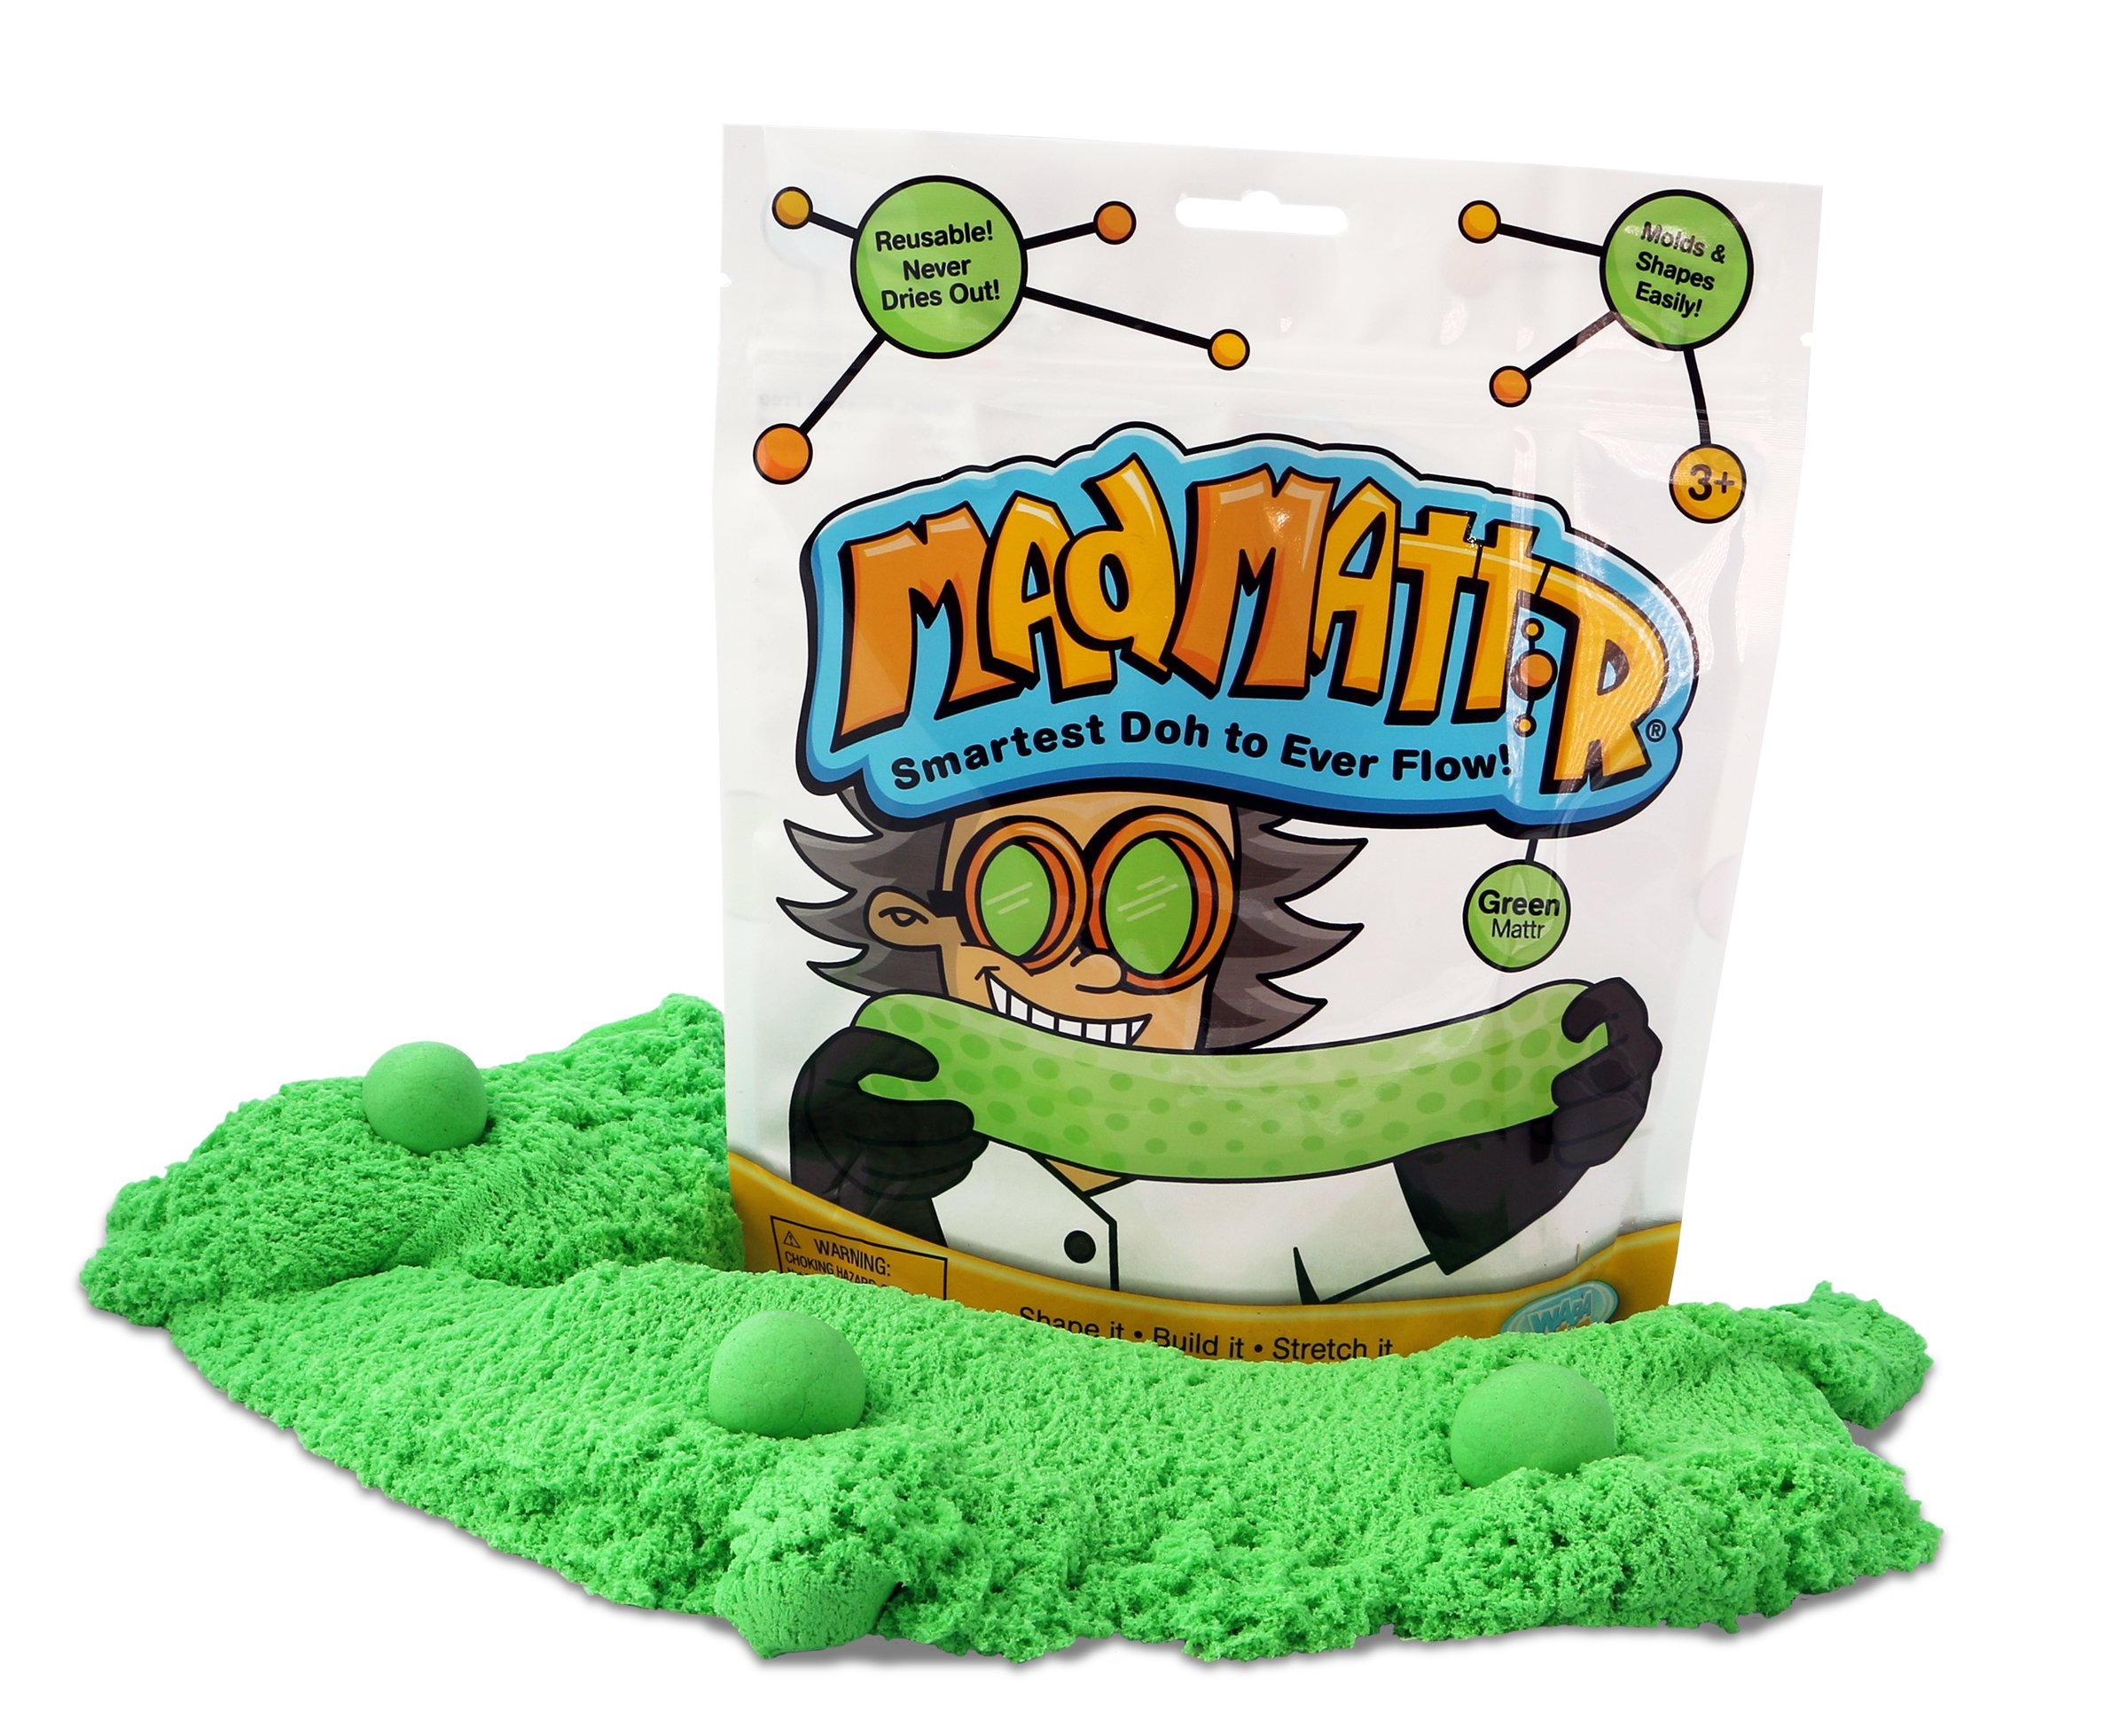 WABA Fun Mad Mattr Super-Soft Modelling Dough Compound that Never Dries Out, 10 Ounces, Green